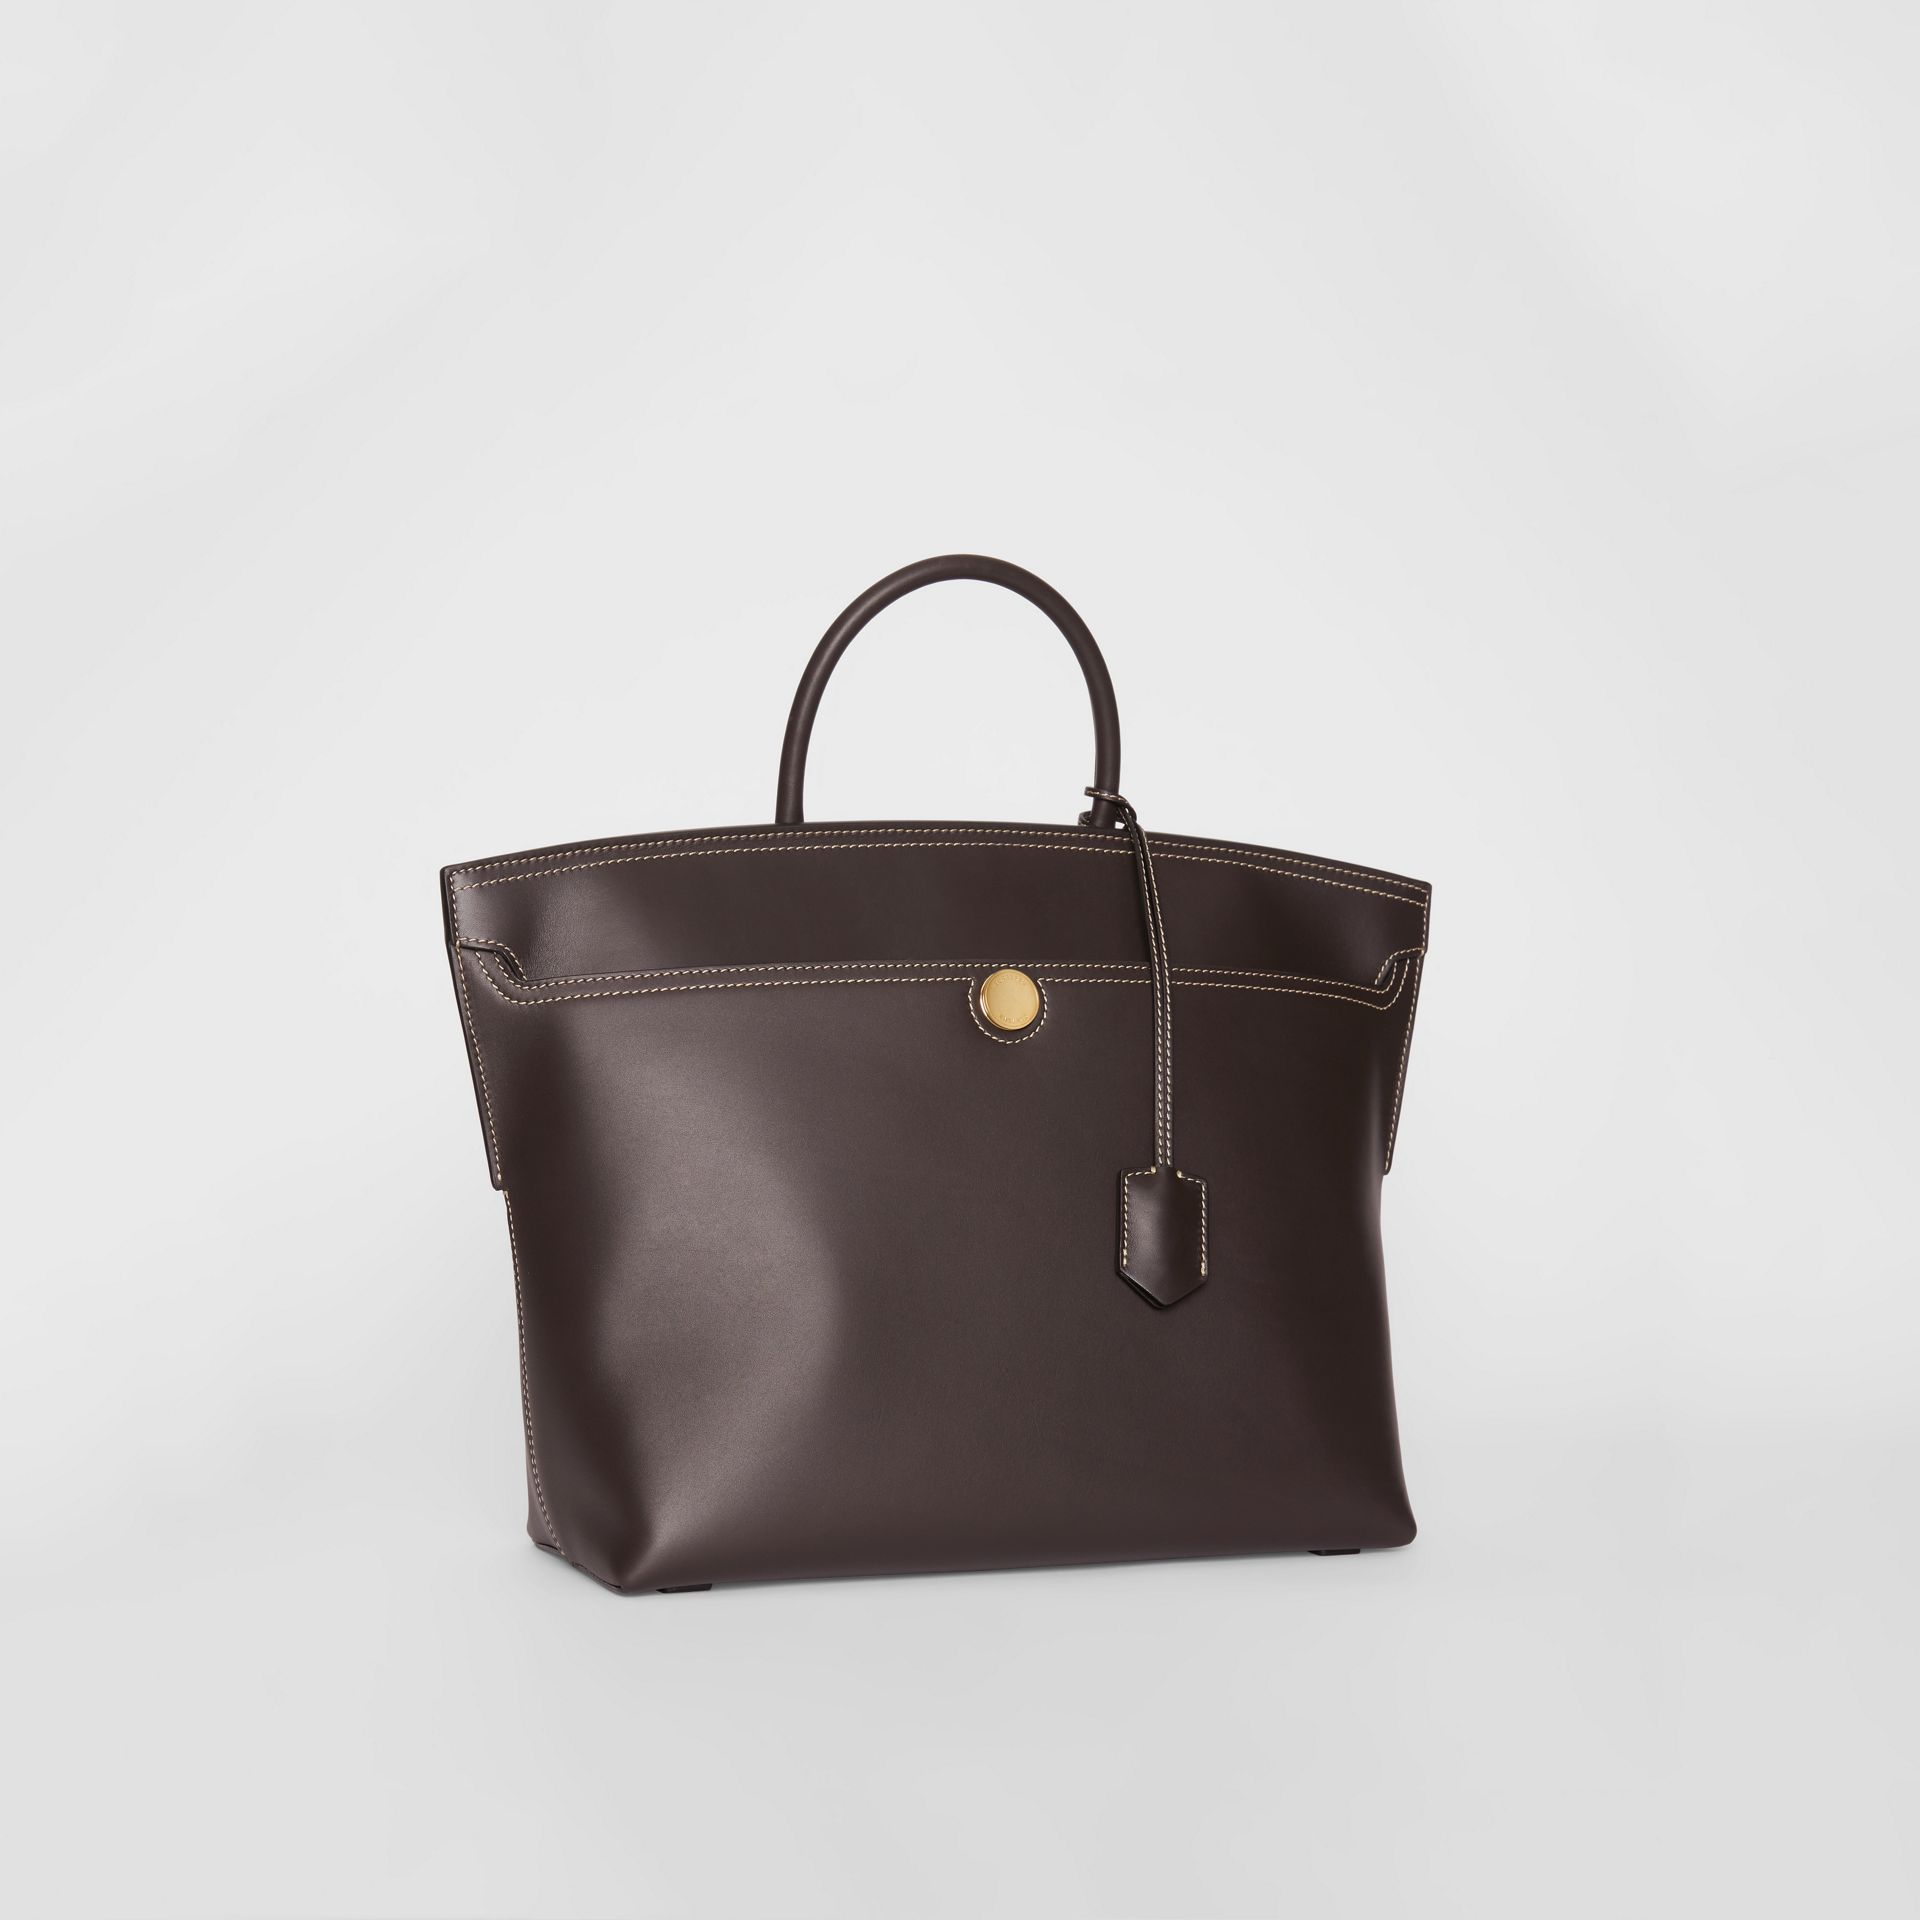 Leather Society Top Handle Bag in Coffee - Women | Burberry - gallery image 6